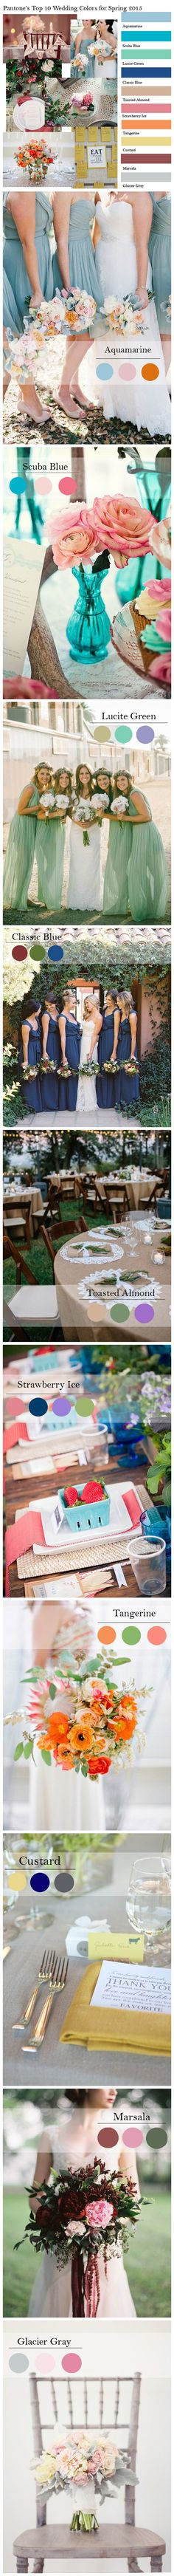 Pantone's Top 10 Fashion Colors for Spring Wedding Color Trends 2015